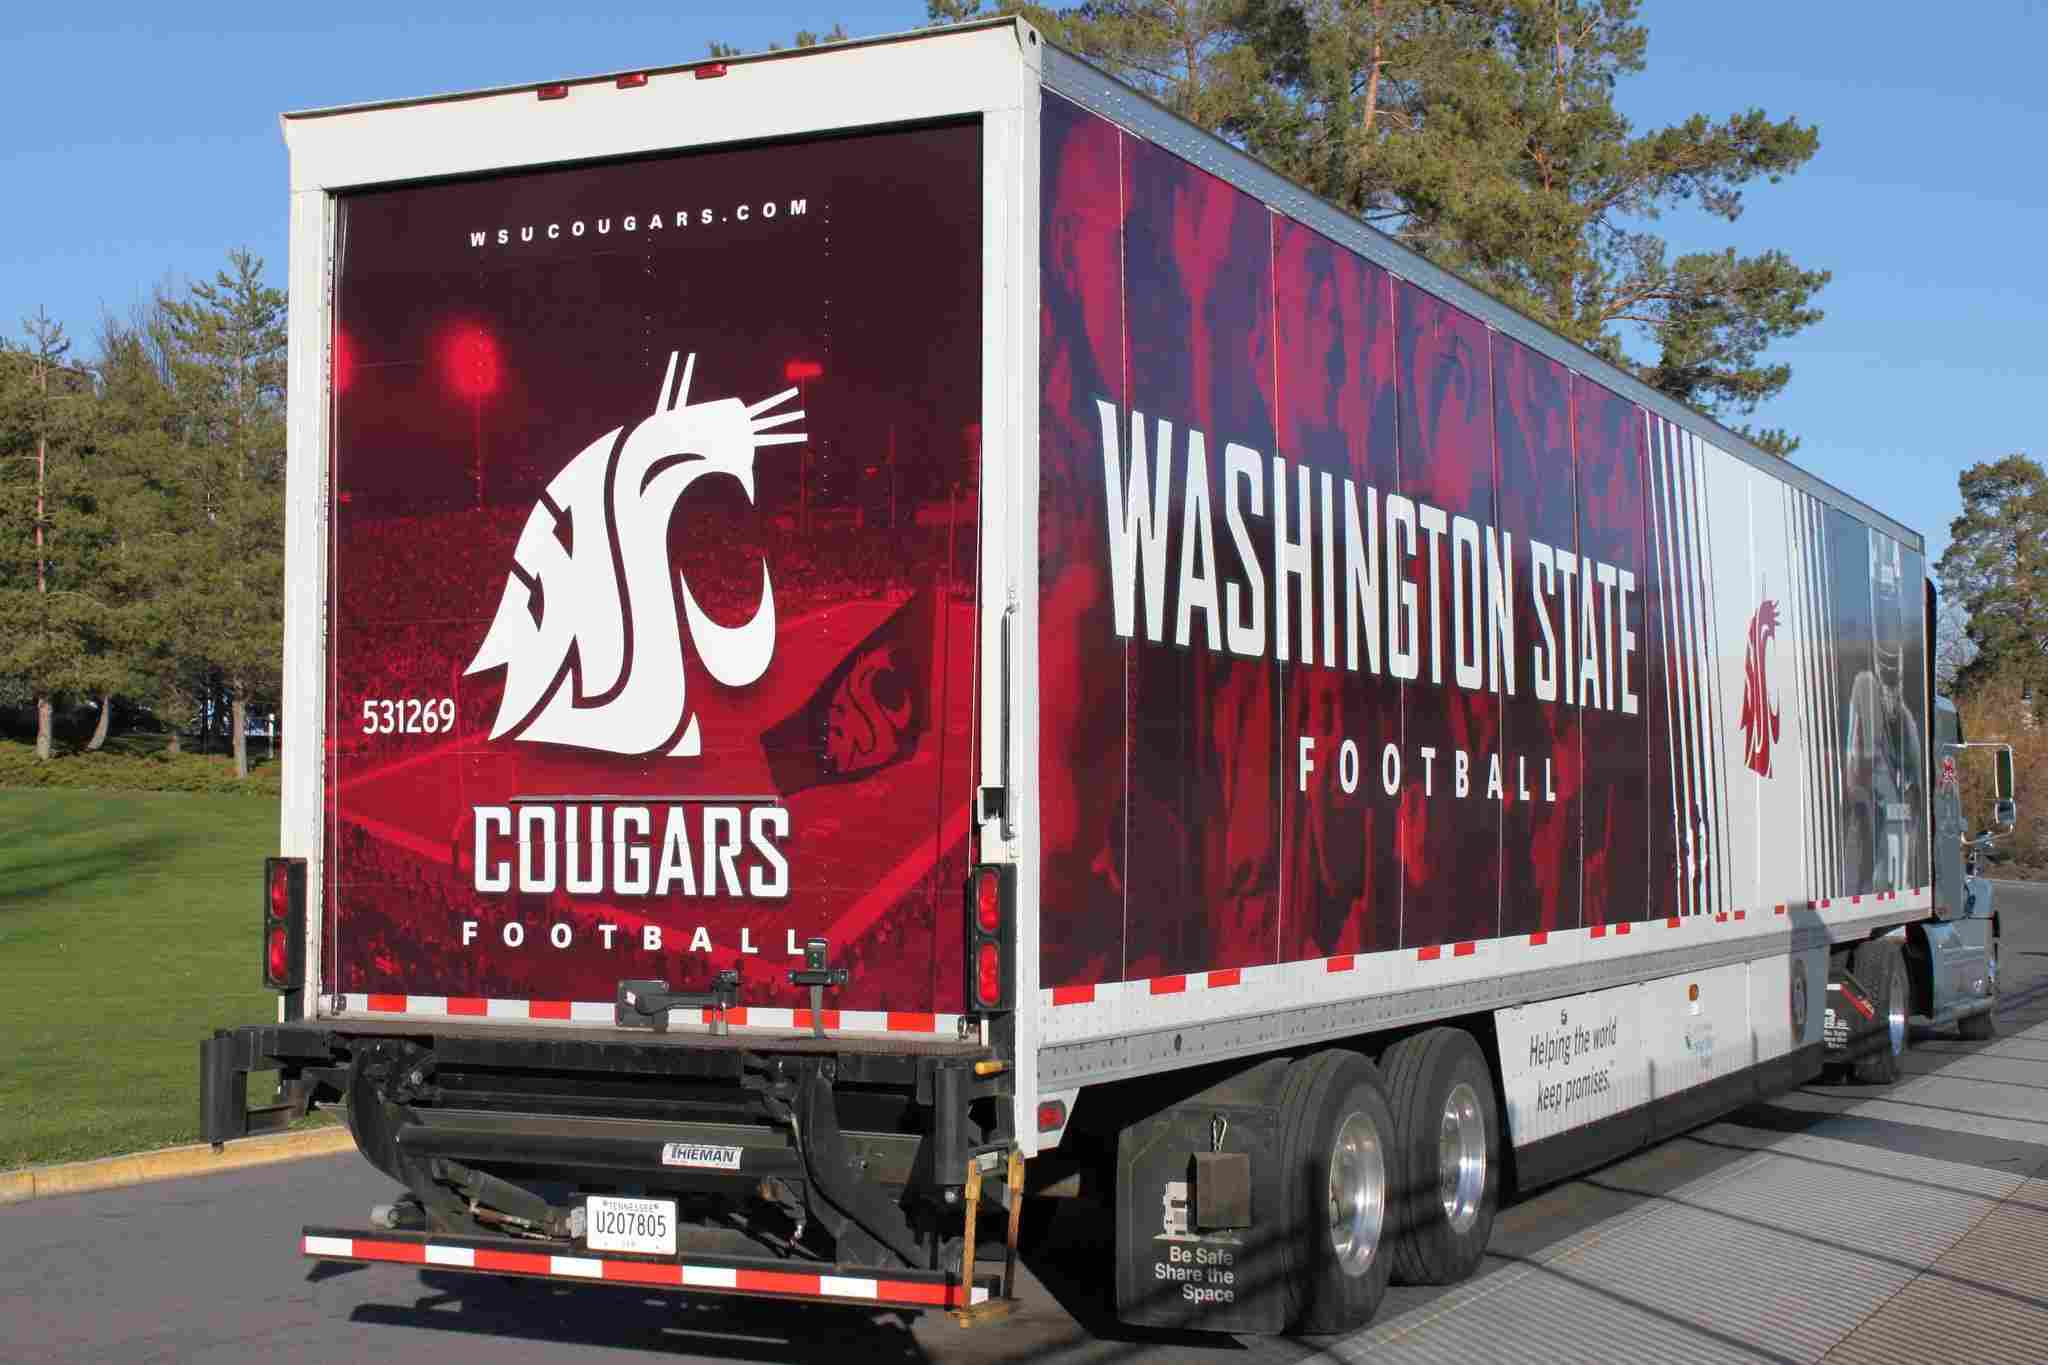 Wsu Cougars Cr england partners with the 2048x1365